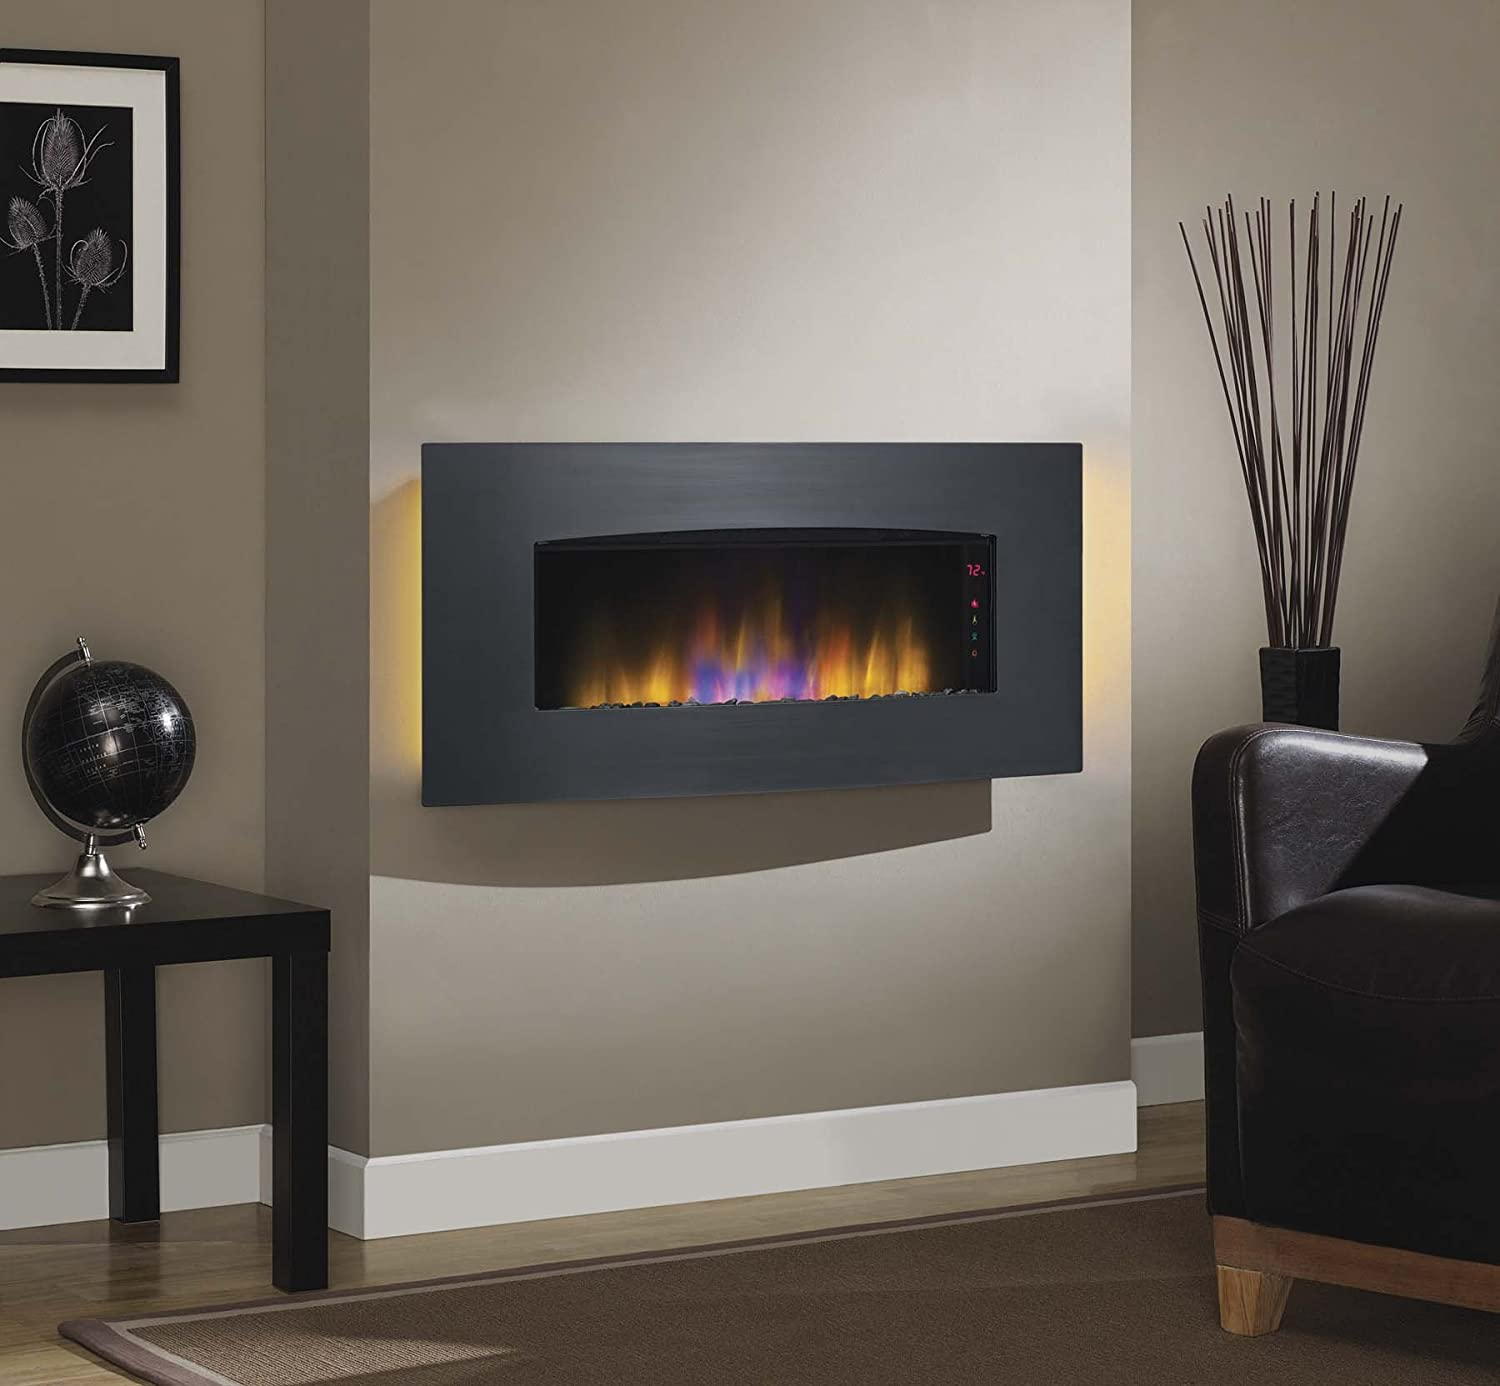 design mounted wayfair electric reviews wall fireplace improvement ca home zipcode lauderhill pdp